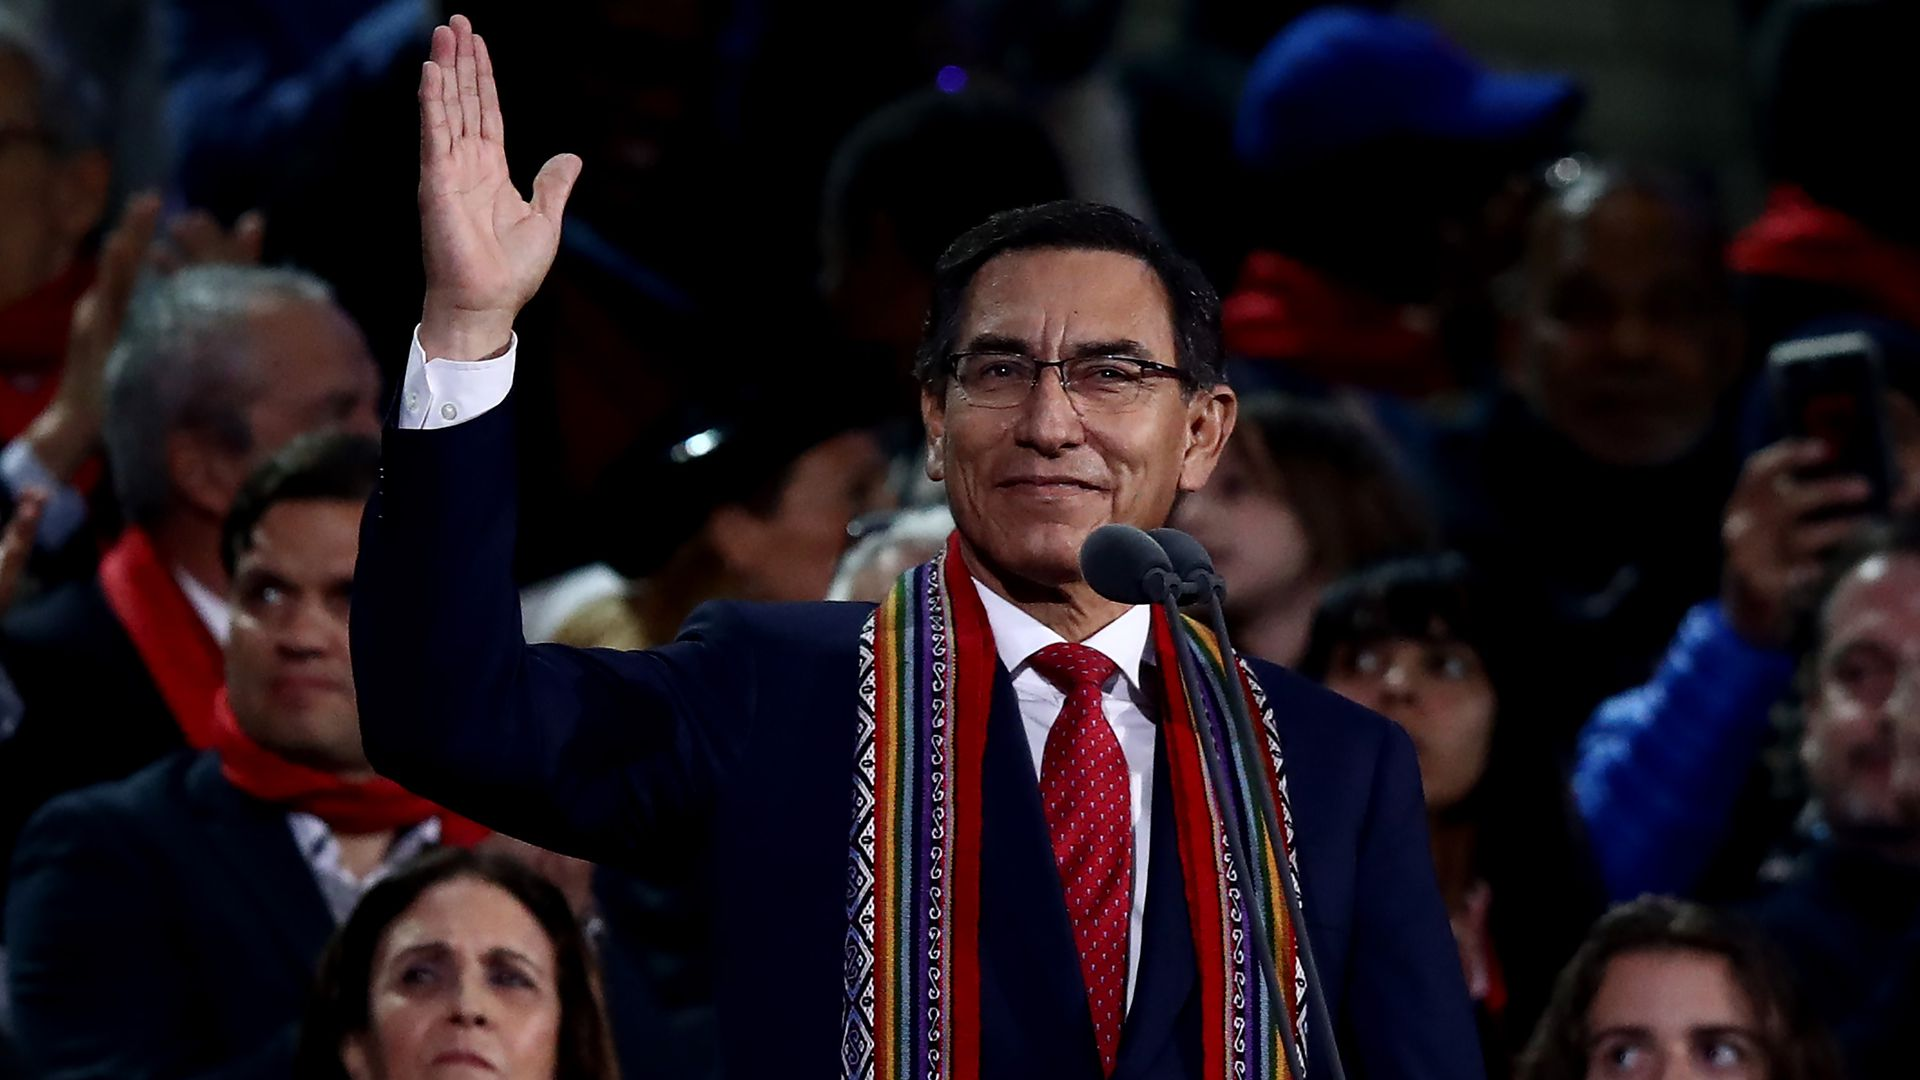 Martin Vizcarra waving in front of a stadium crowd